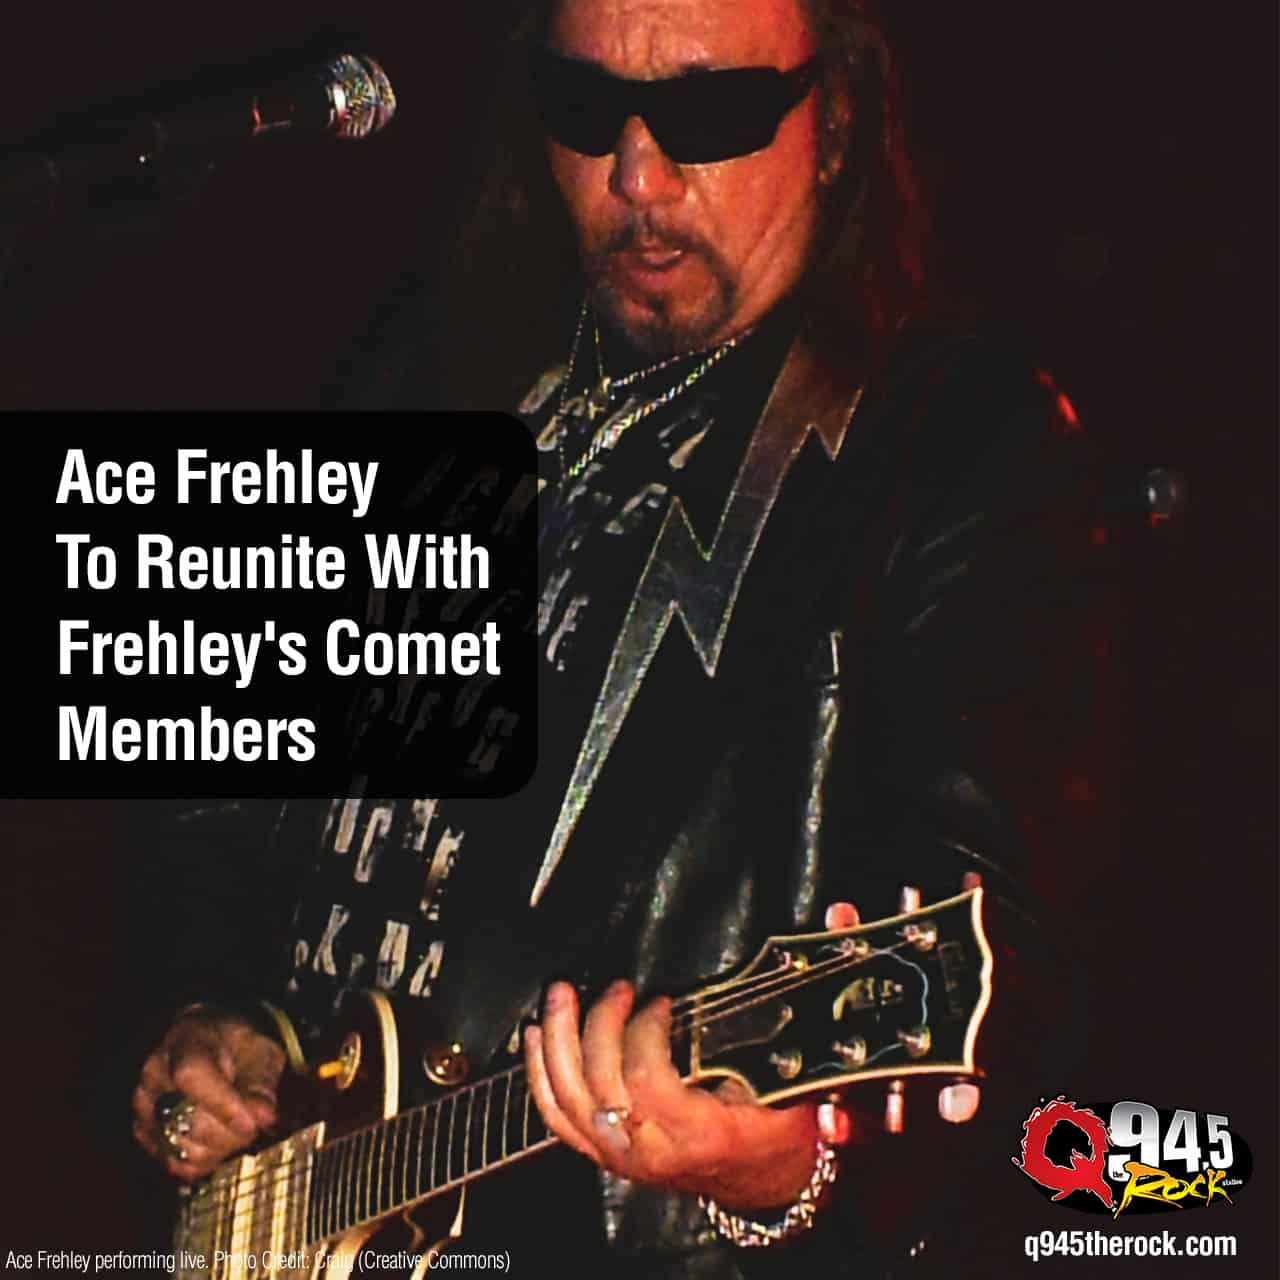 Ace Frehley To Reunite With Frehley's Comet Members